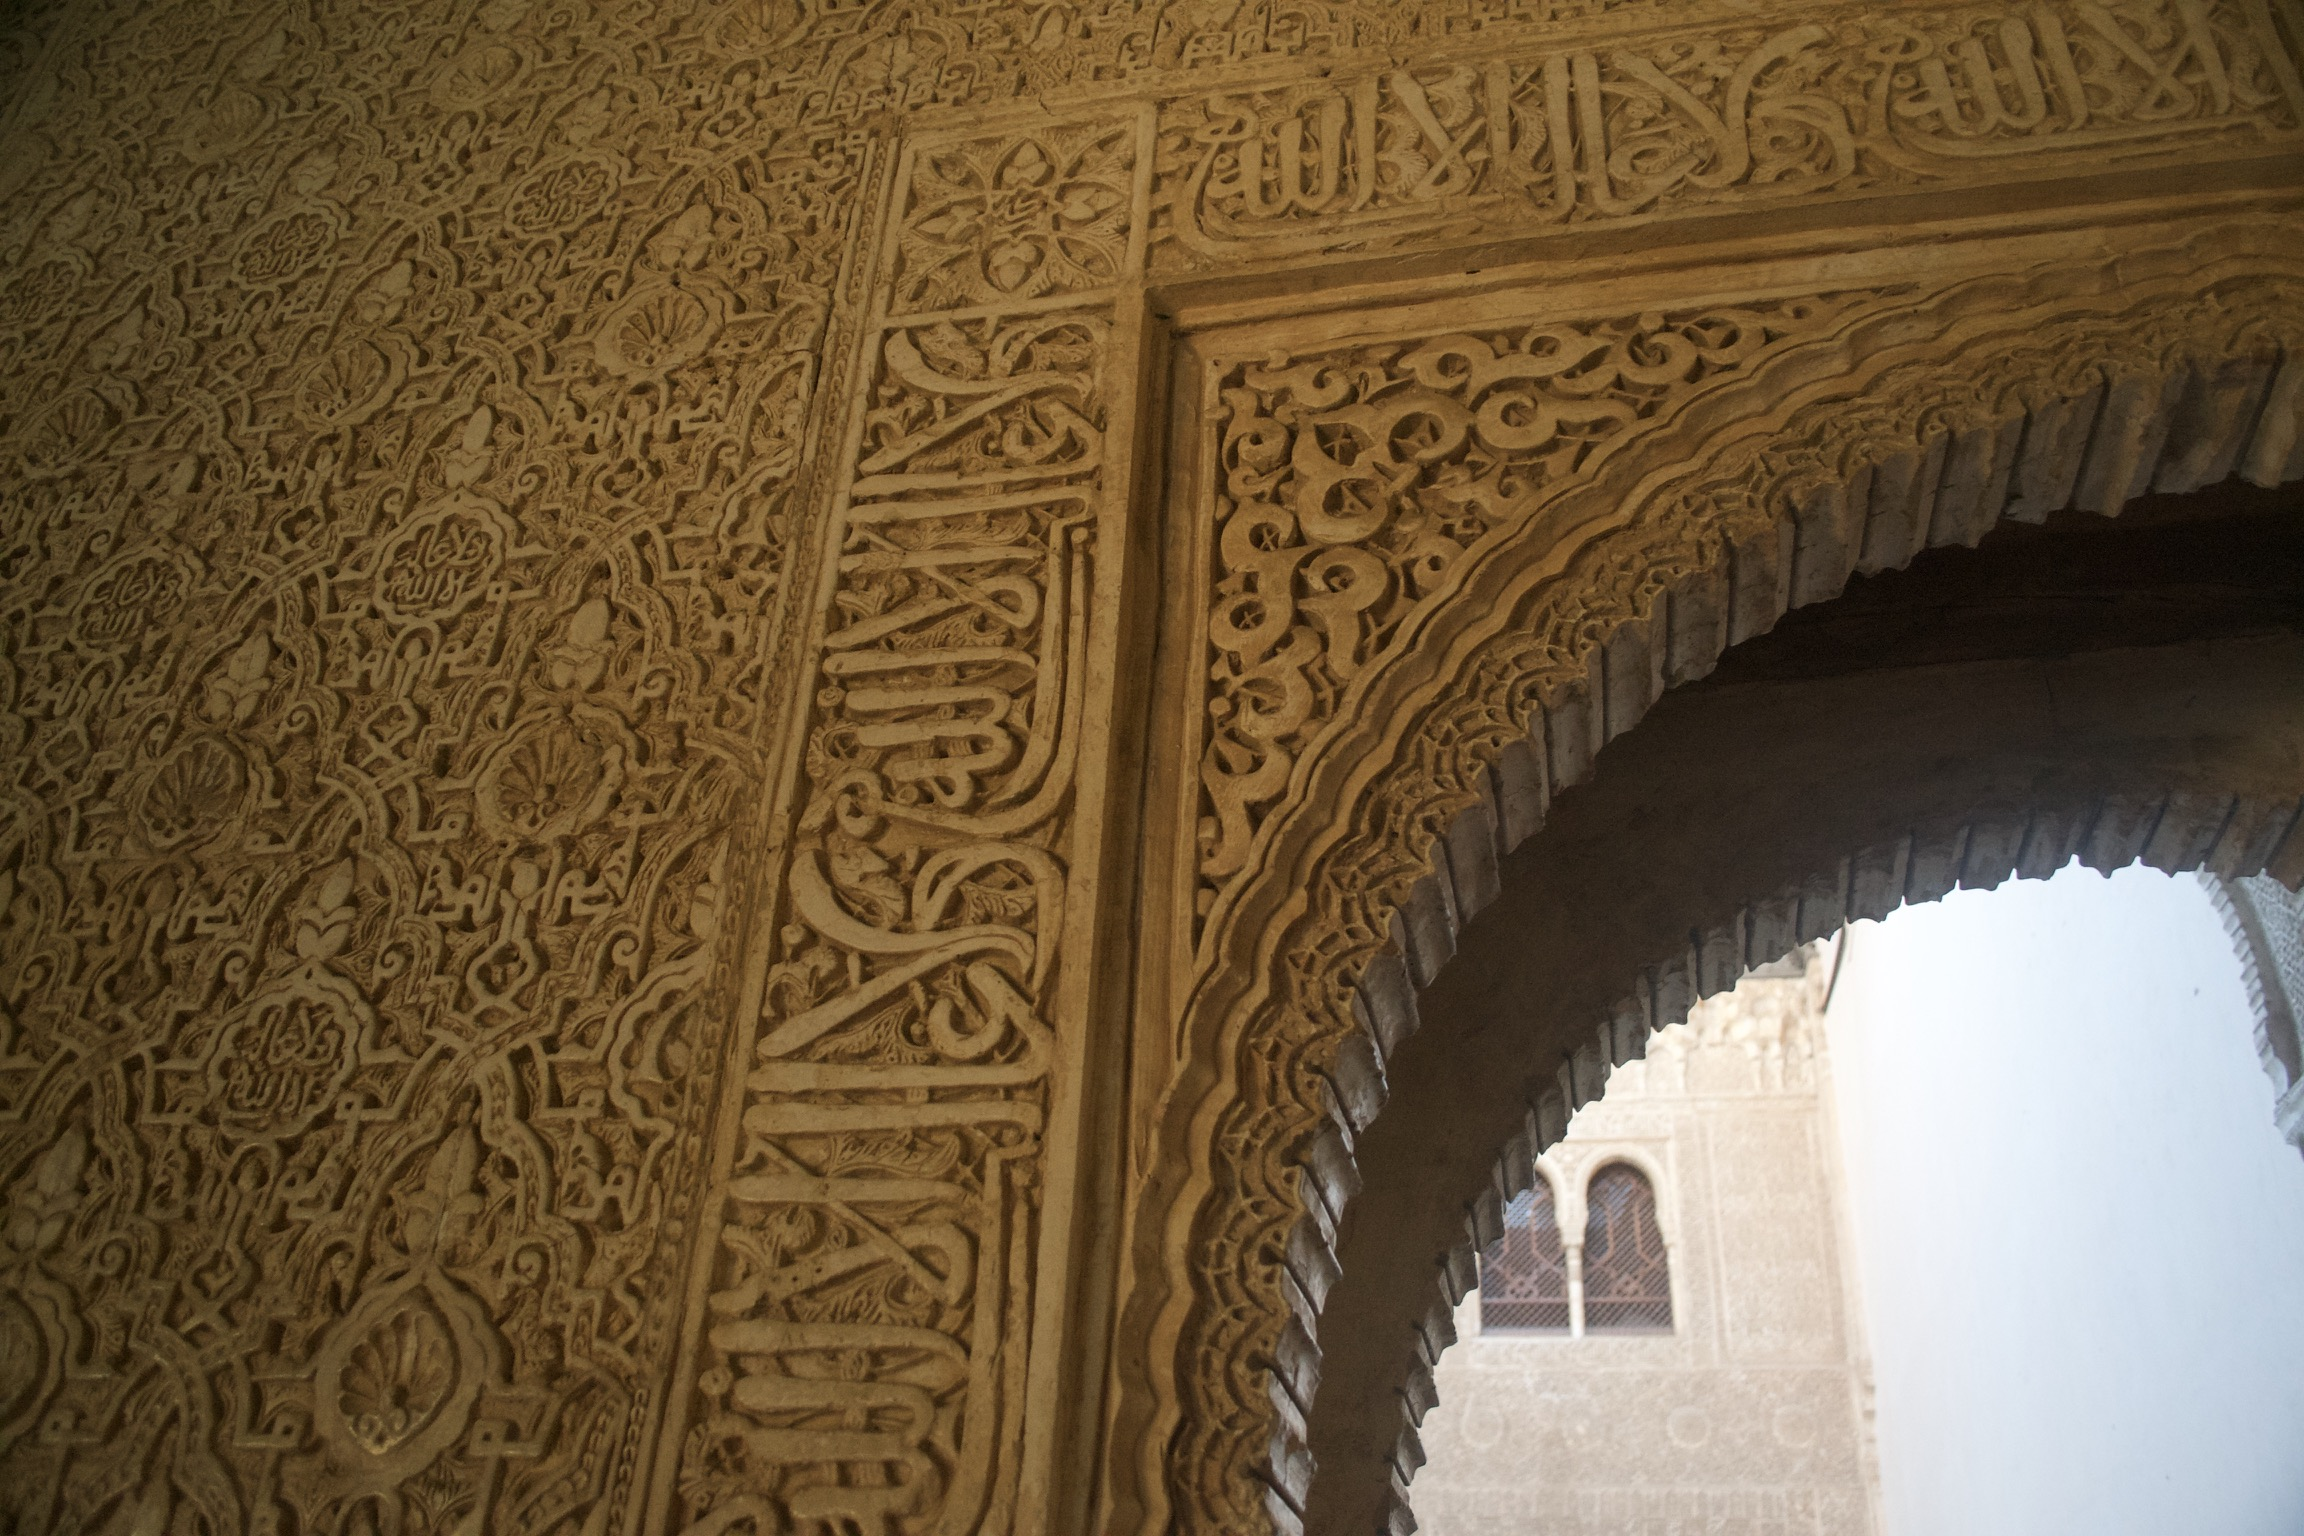 Details of the intricate designs and inscriptions on the wall surrounding an arched doorway.